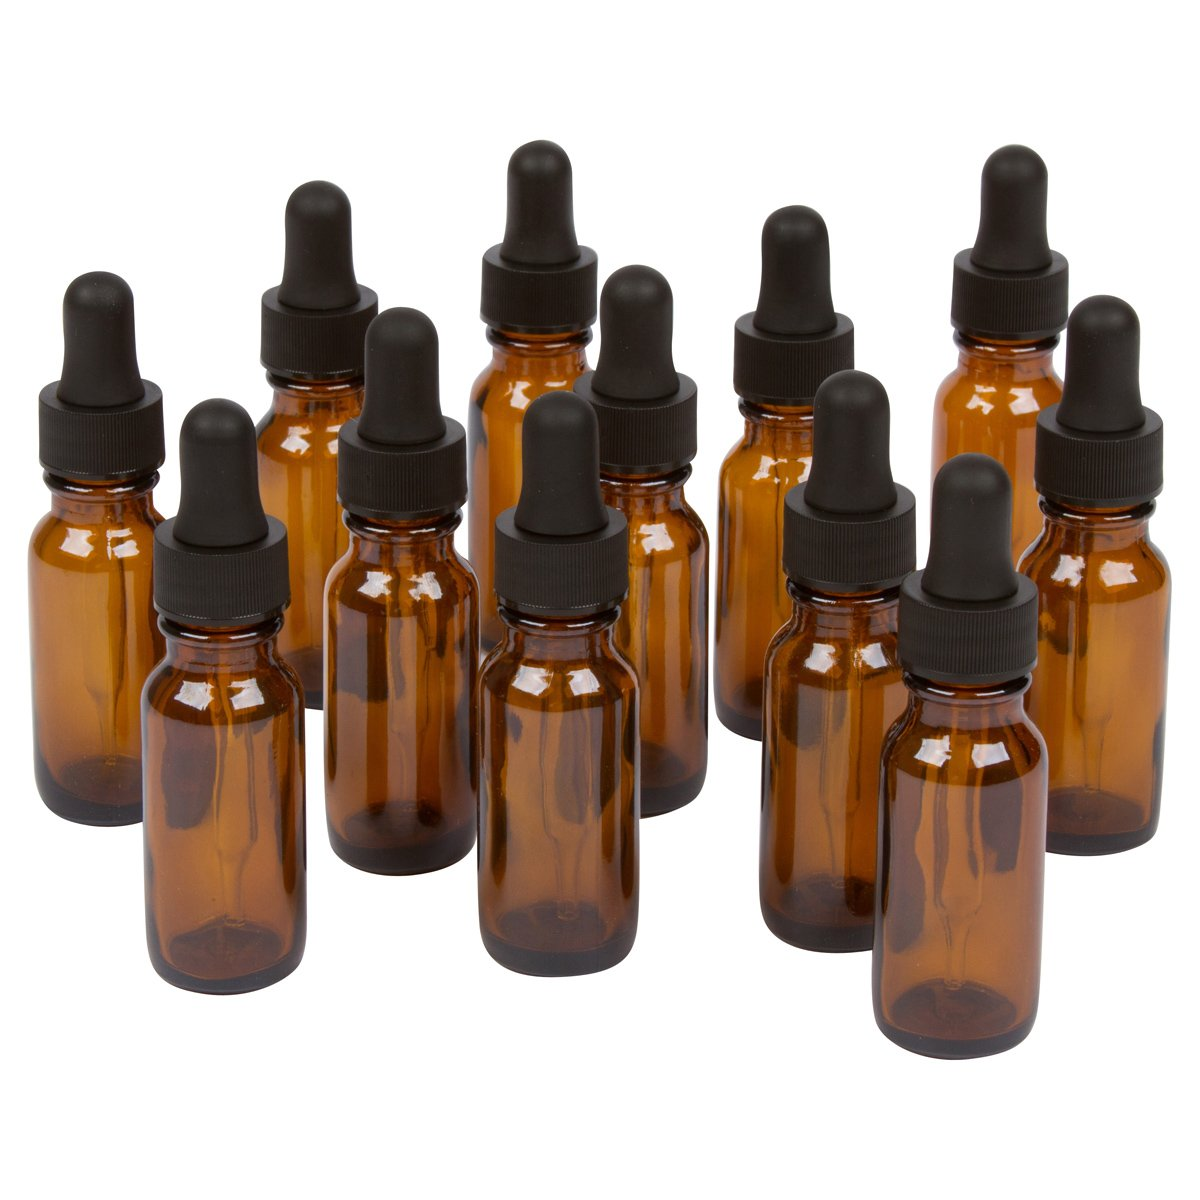 Amber Boston Round Bottles for Essential Oils and Liquids with Black Rubber Bulb Glass Droppers, 15 ml, Pack of 12